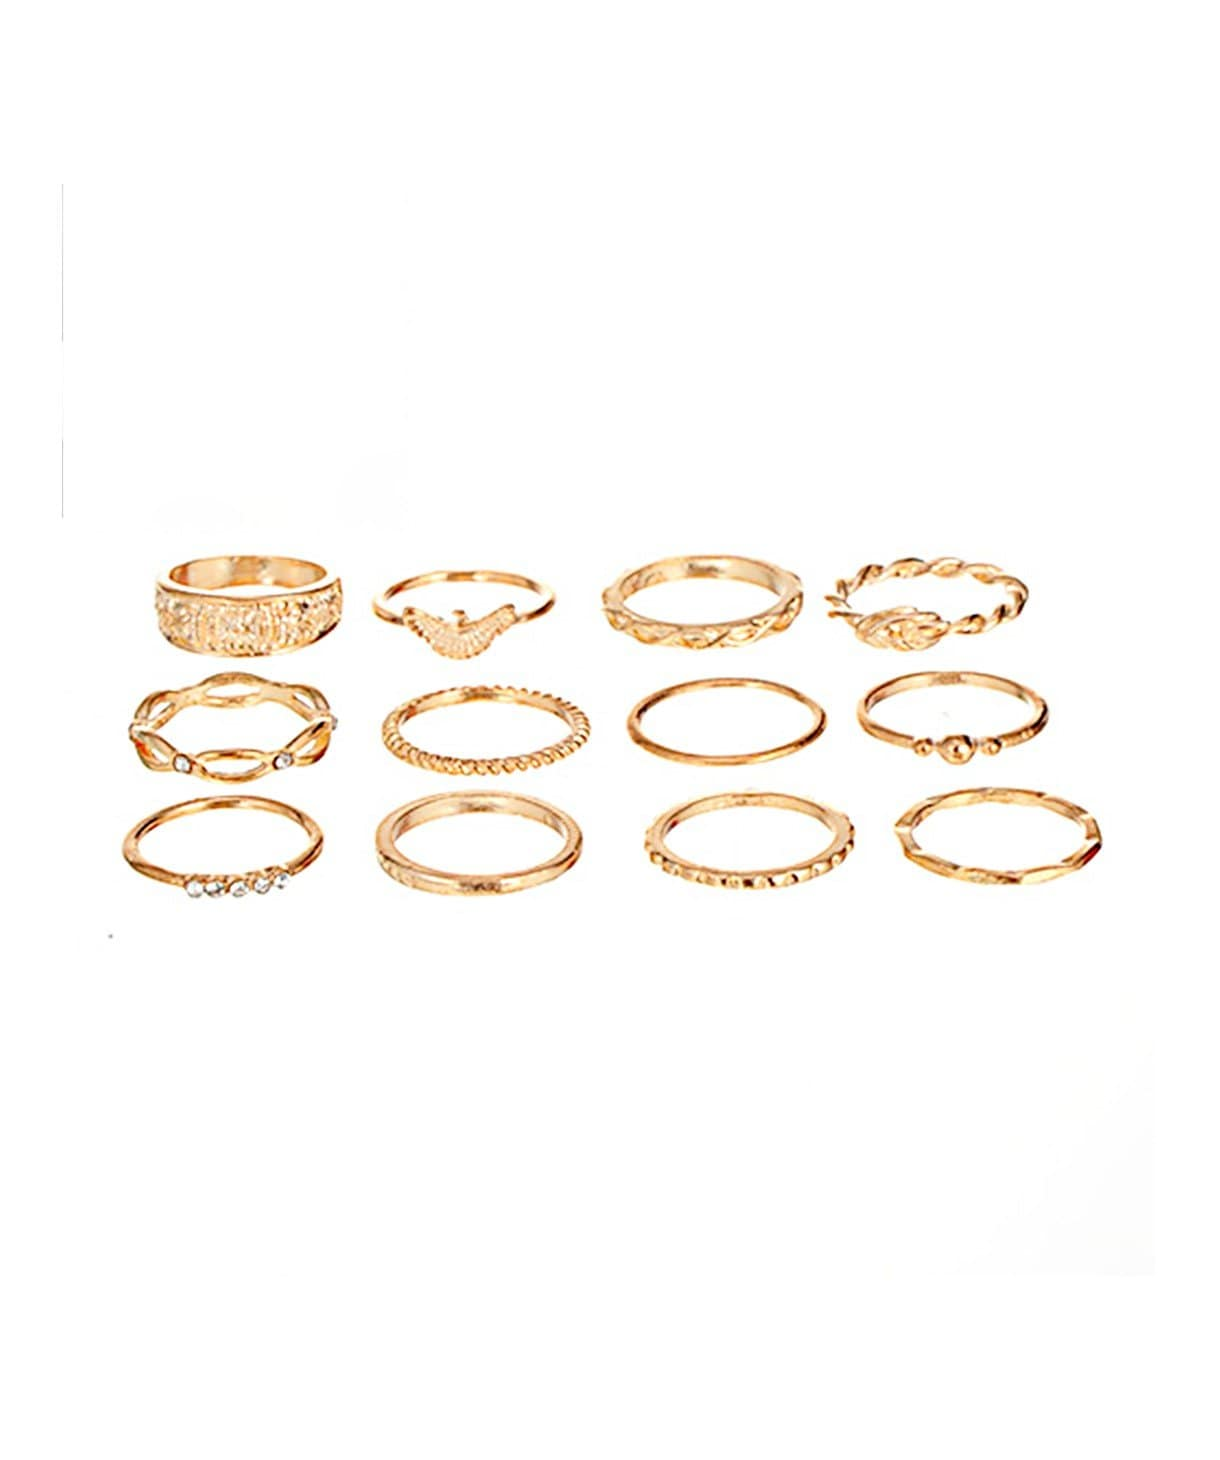 Gold Medley Ring Set - Uptownie